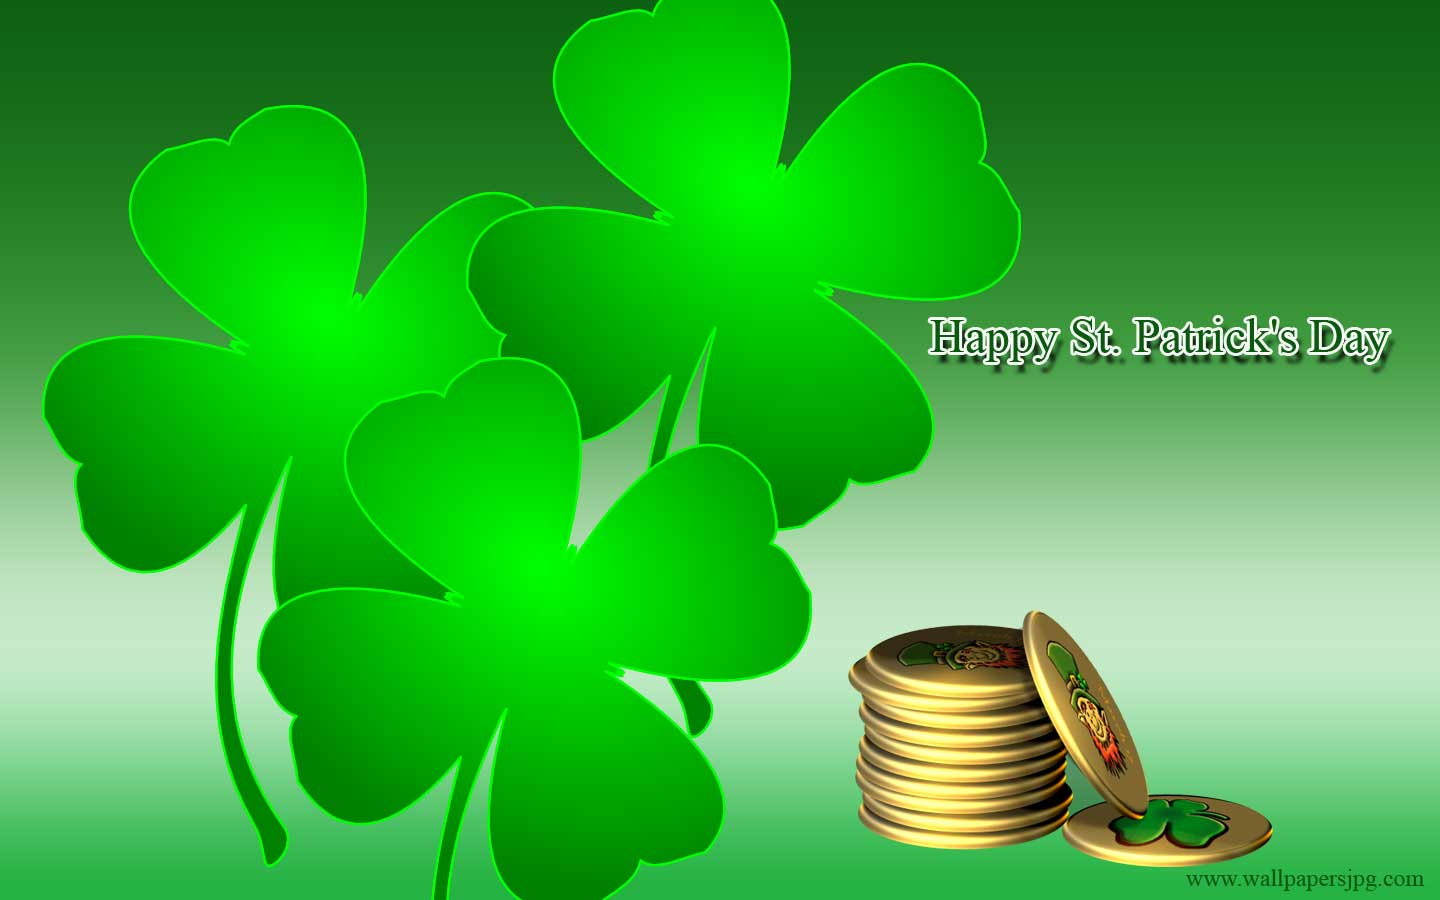 PicturesPool: St Patrick's Day Greetings WallPapers